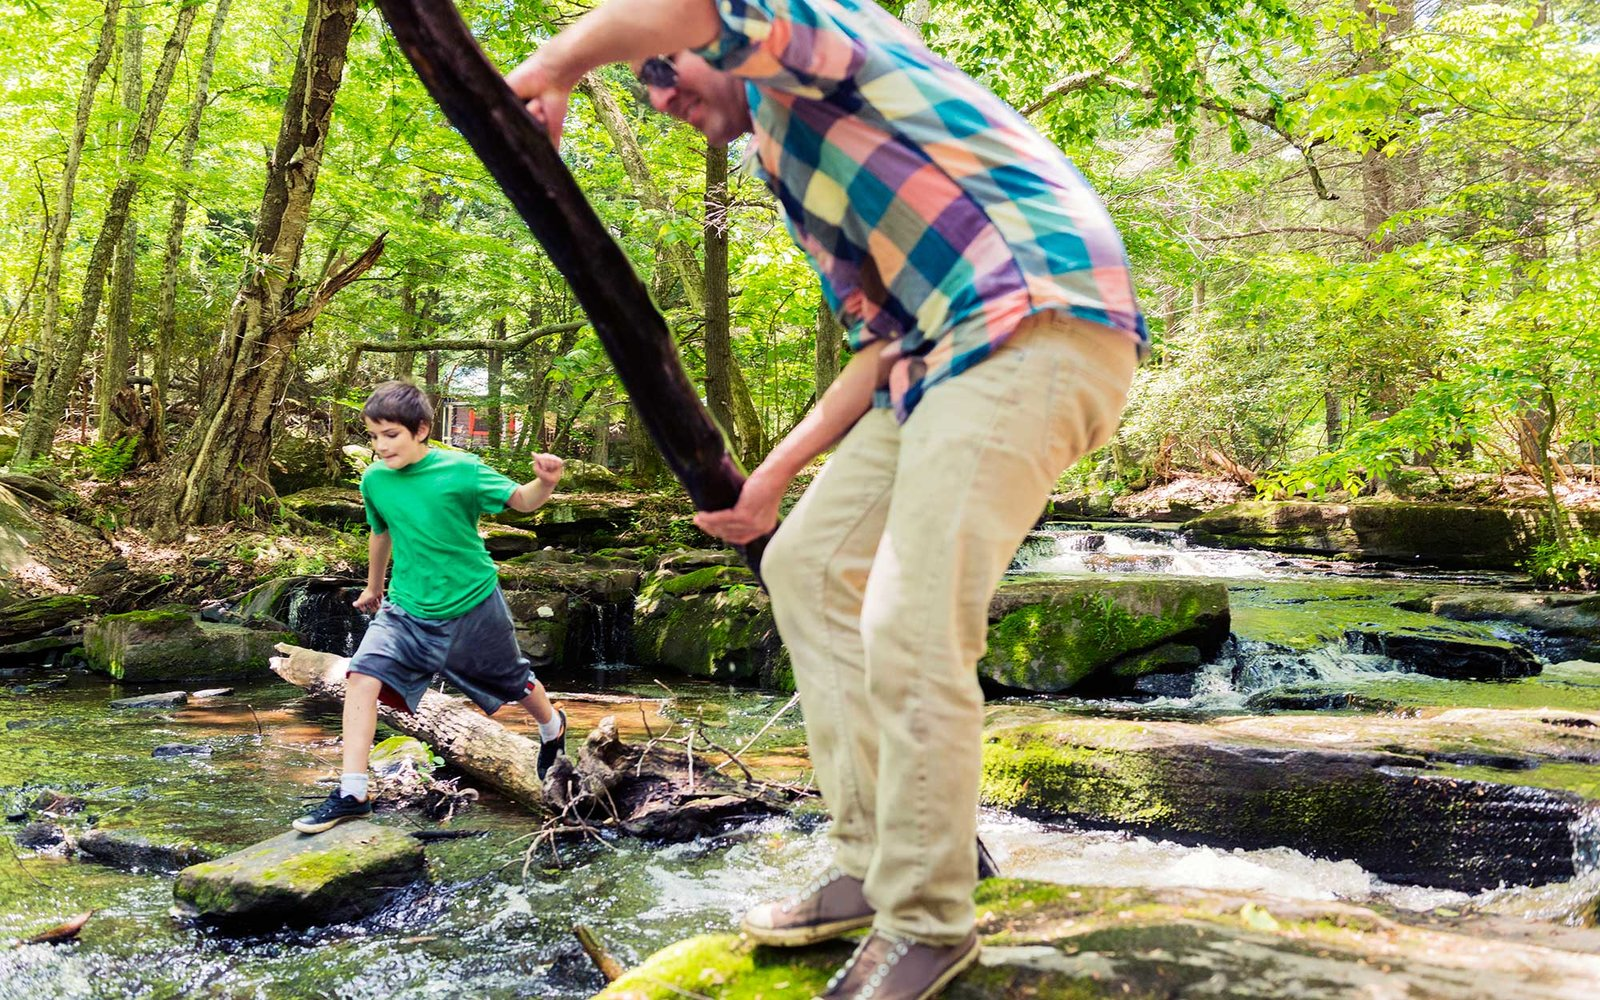 This is a horizontal, color, royalty free stock photograph of a young, caucasian, 10 year old American boy on summer vacation in the Catskill Mountains in upstate New York, United States. He jumps from rock to rock to cross the wooded stream in the forest